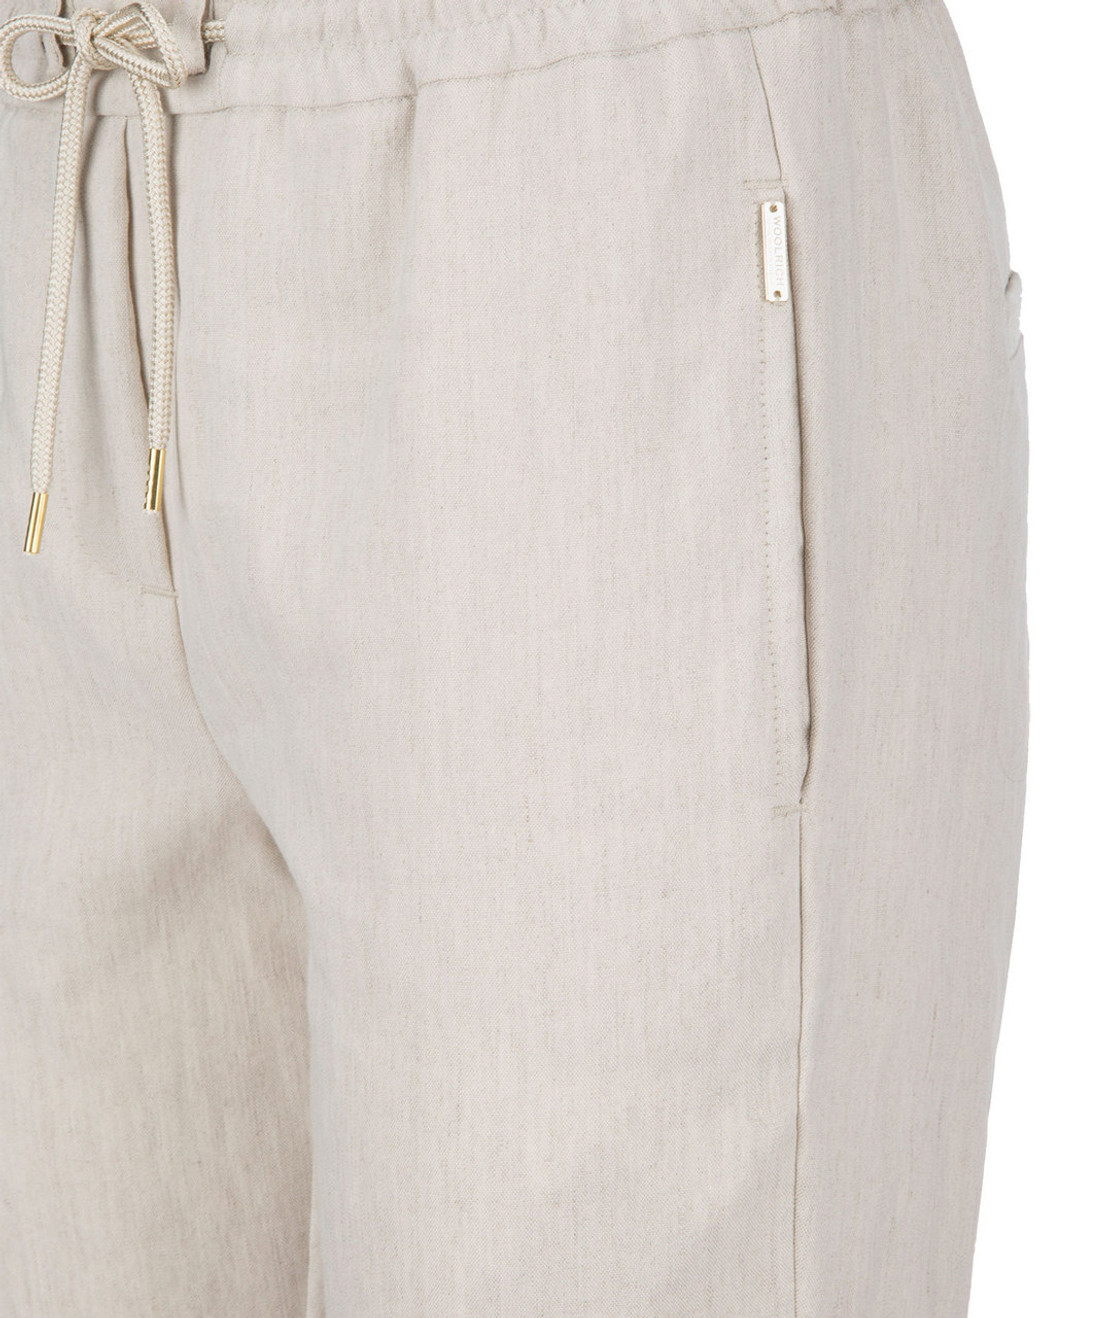 Women's Linen Cuffed Pants - John Rich & Bros.